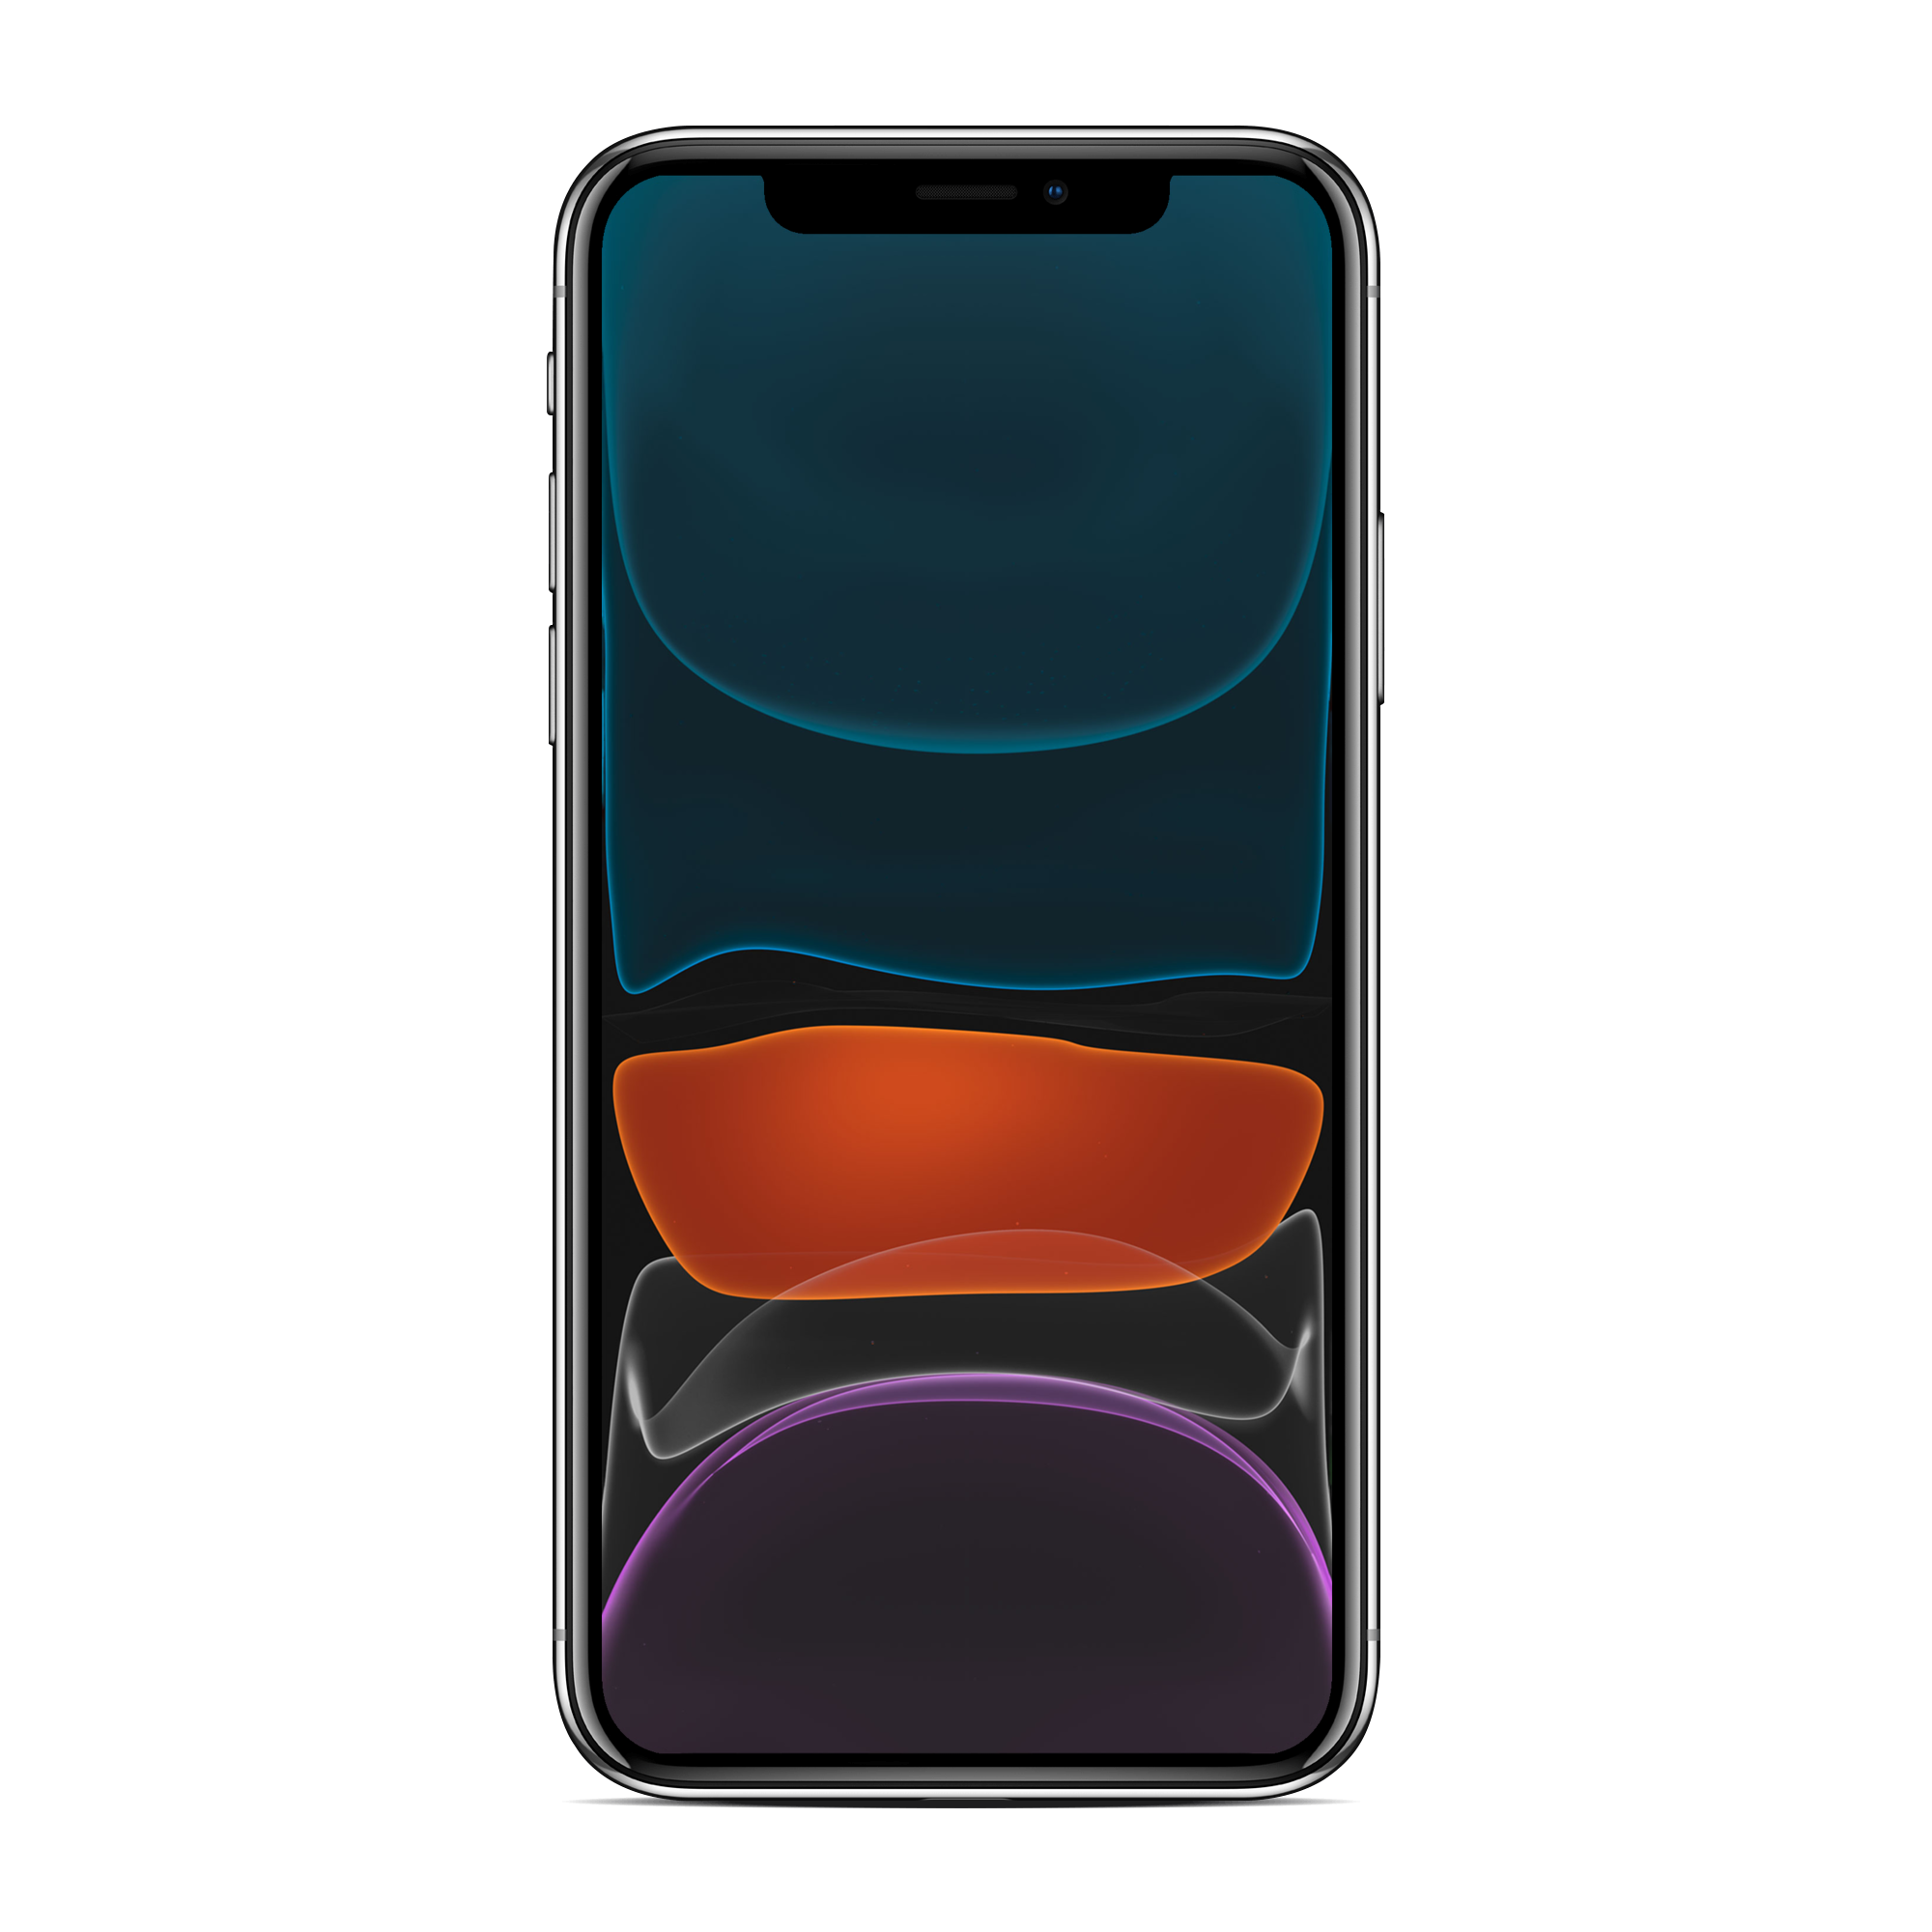 Best Iphone 11 Wallpaper: How To Get IPhone 11 Pro Wallpaper On IPhone X/XR/XS